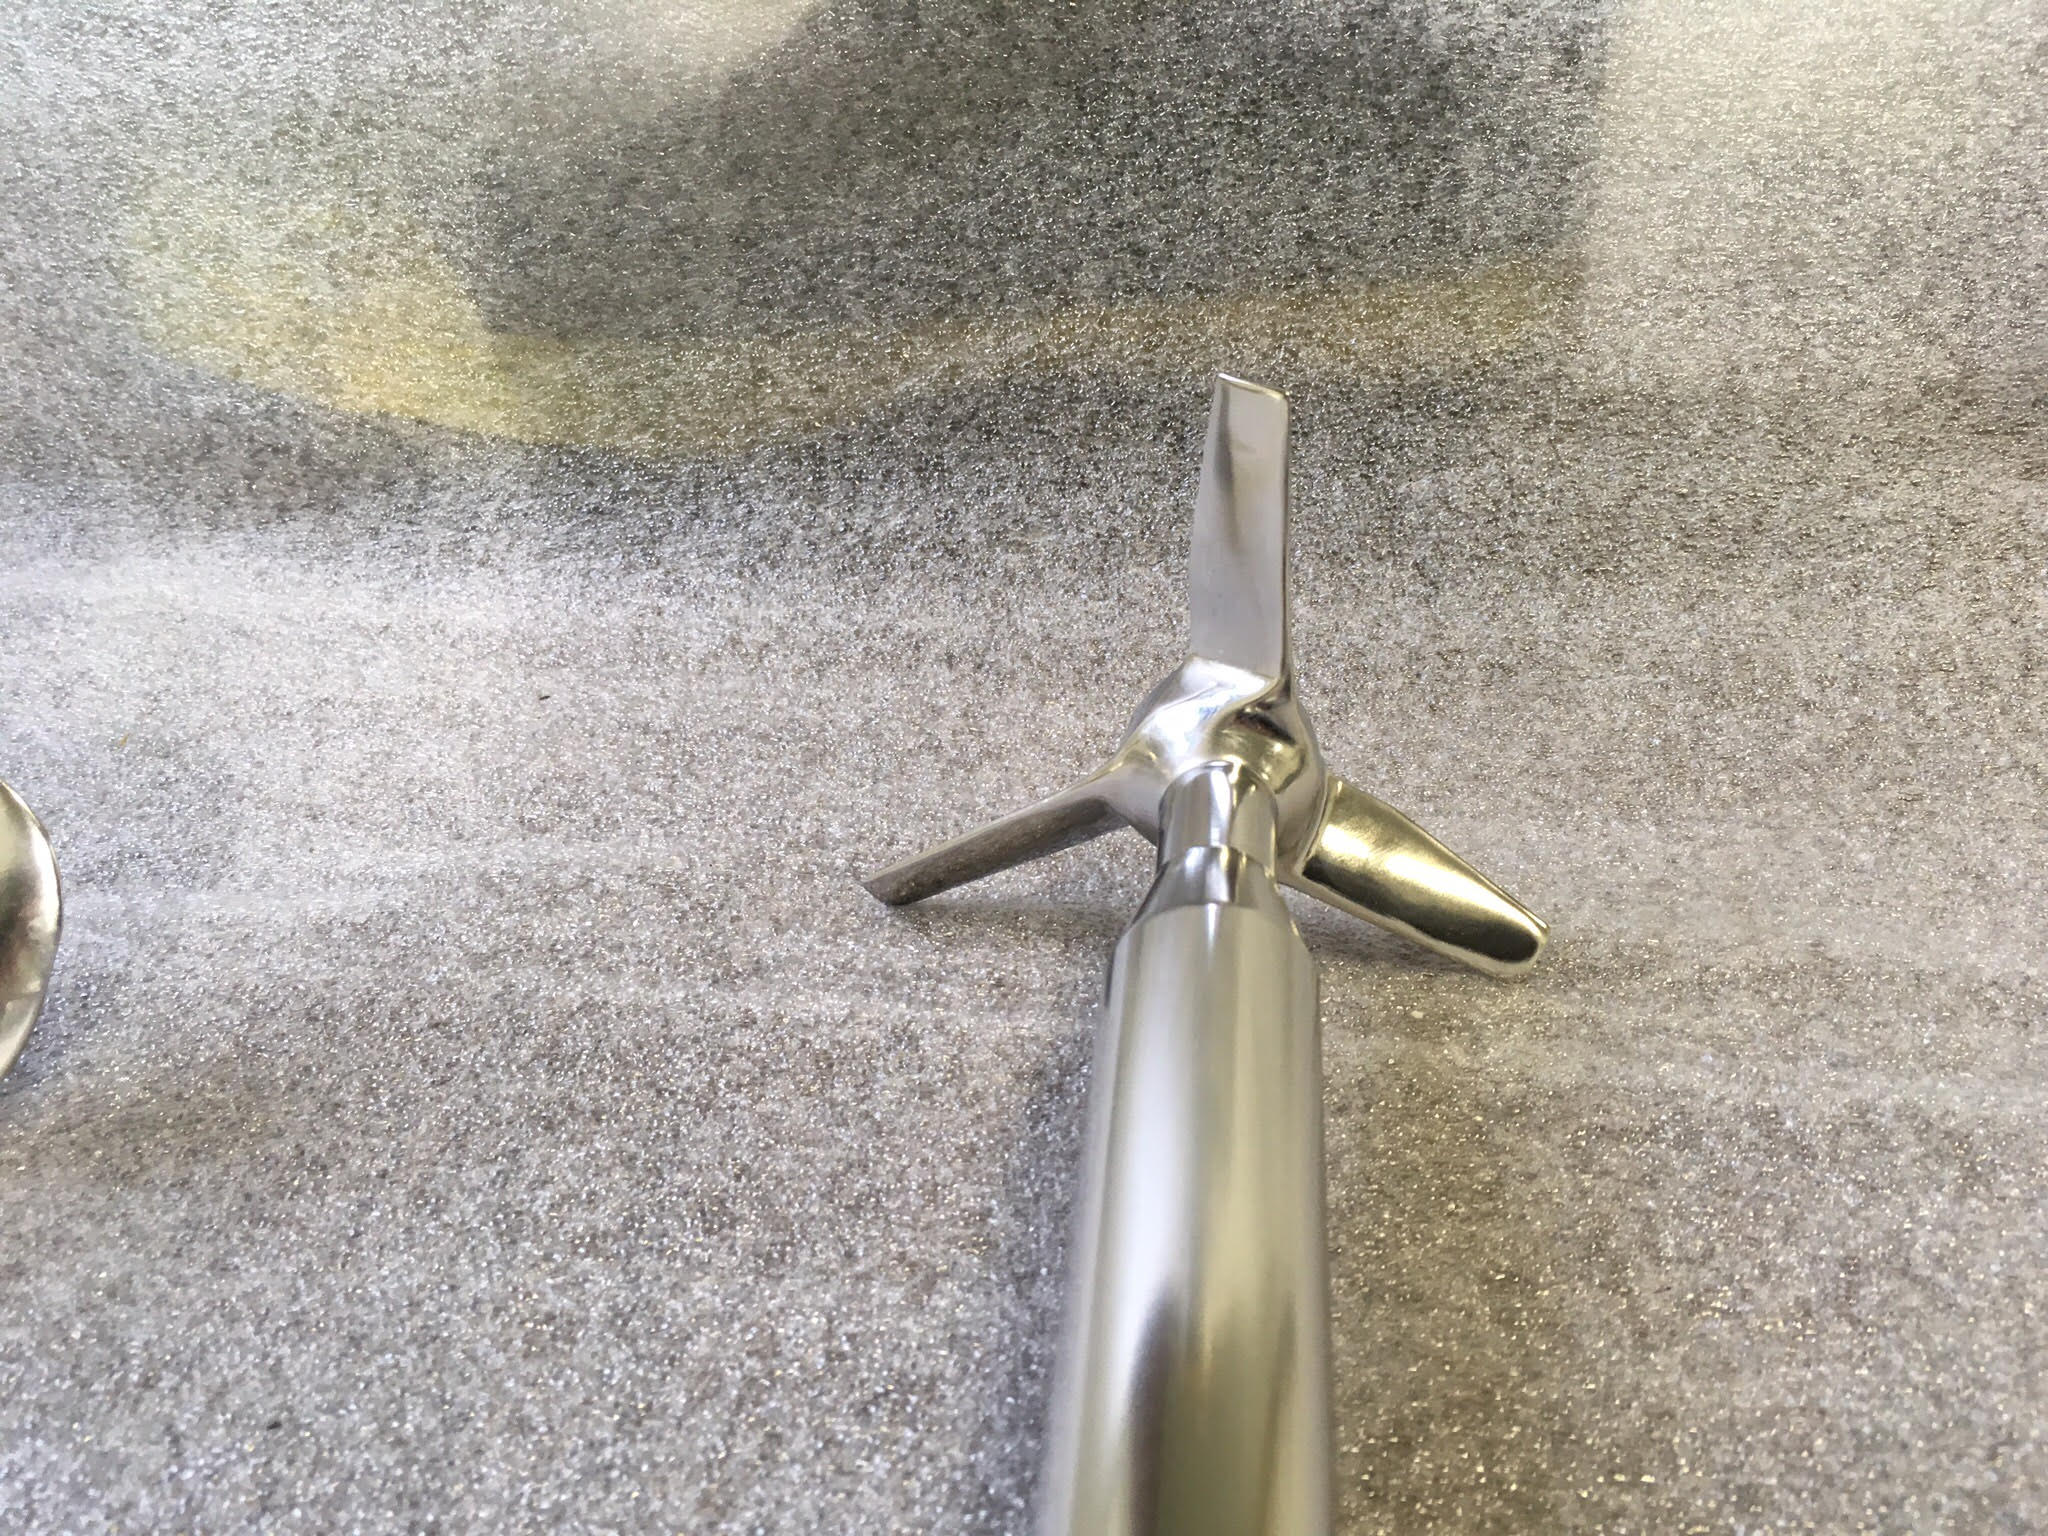 Electropolishing Small Propeller